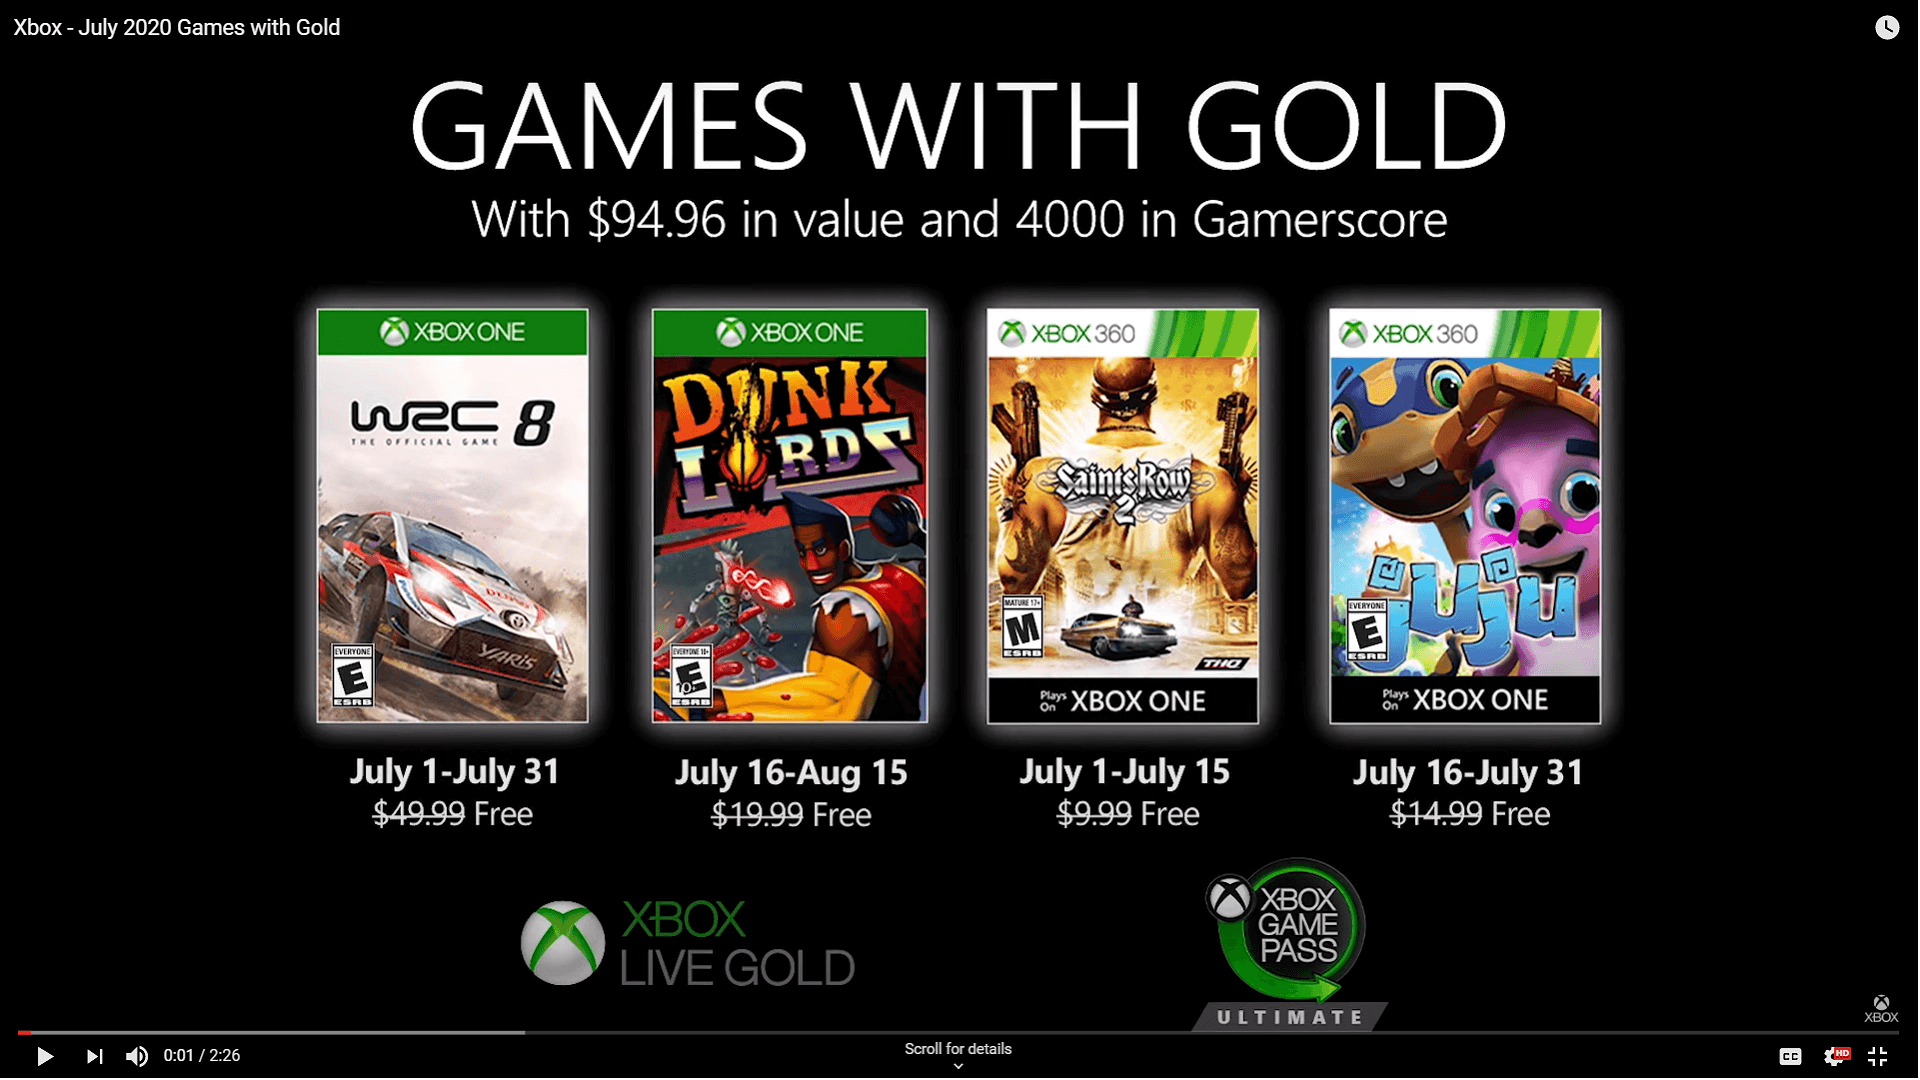 The July 2020 Games with Gold Brings Back Saints Row 2